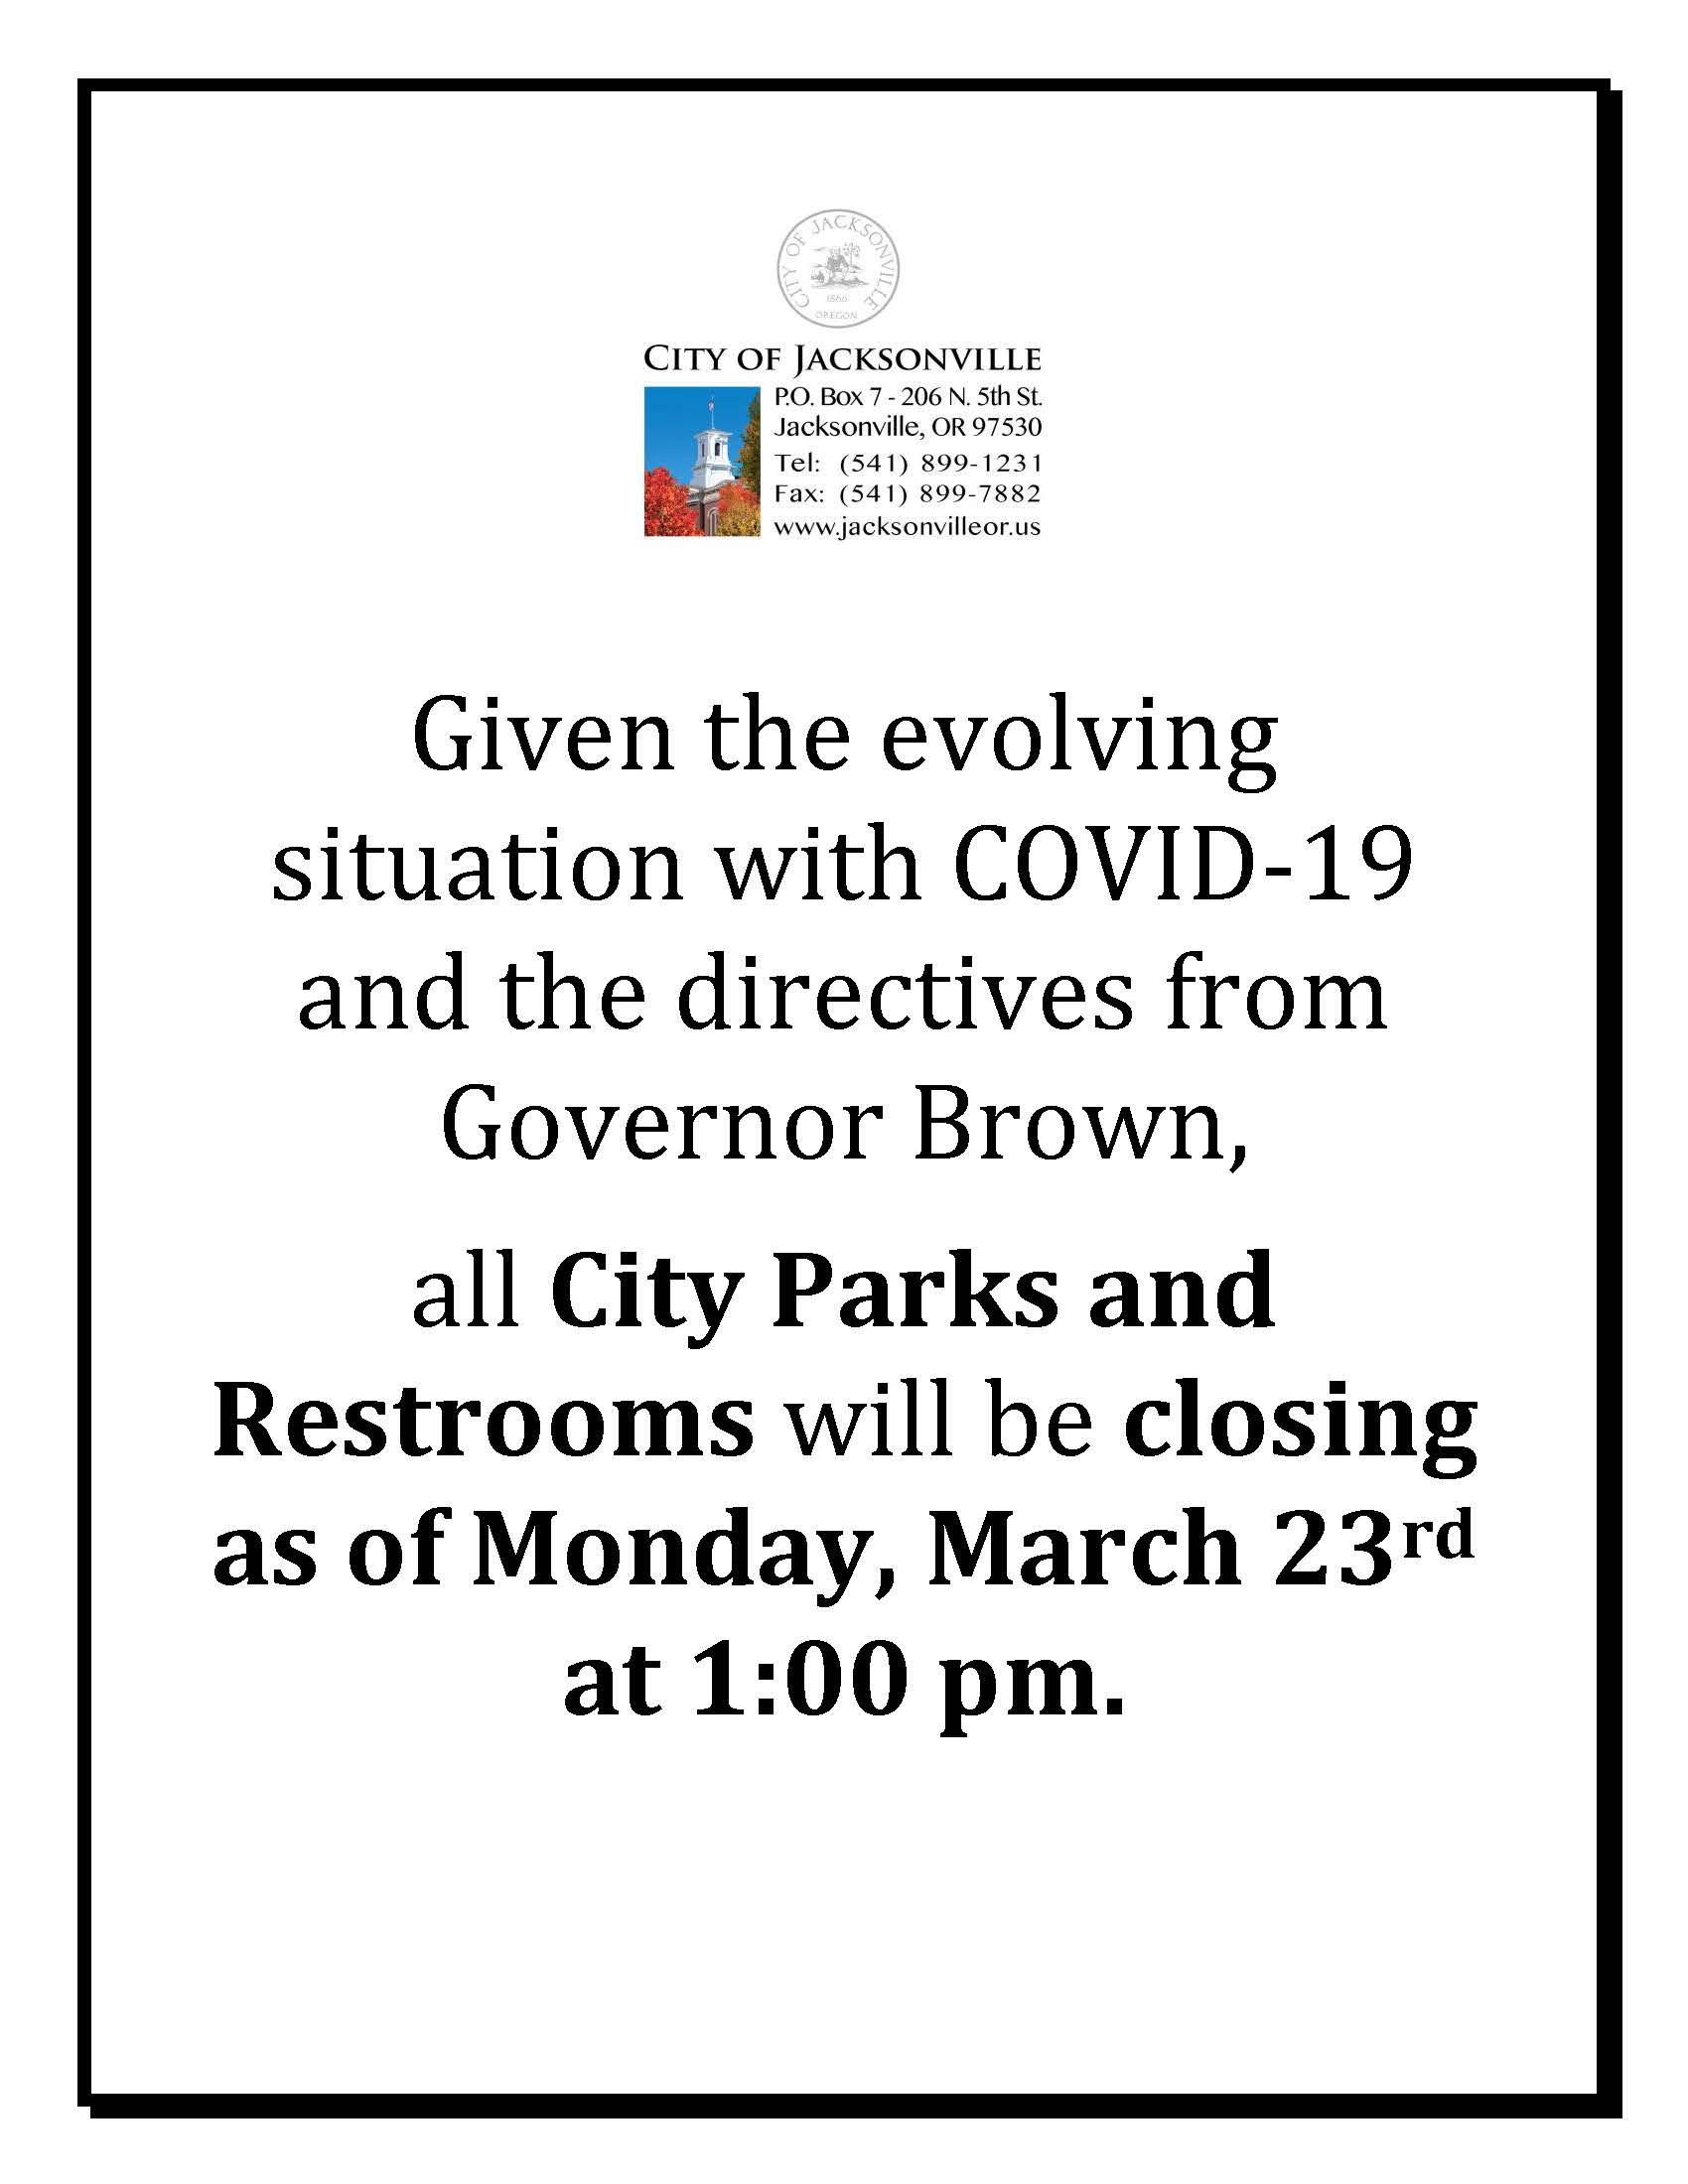 sign for parks and restrooms closure effective 03.23.2020